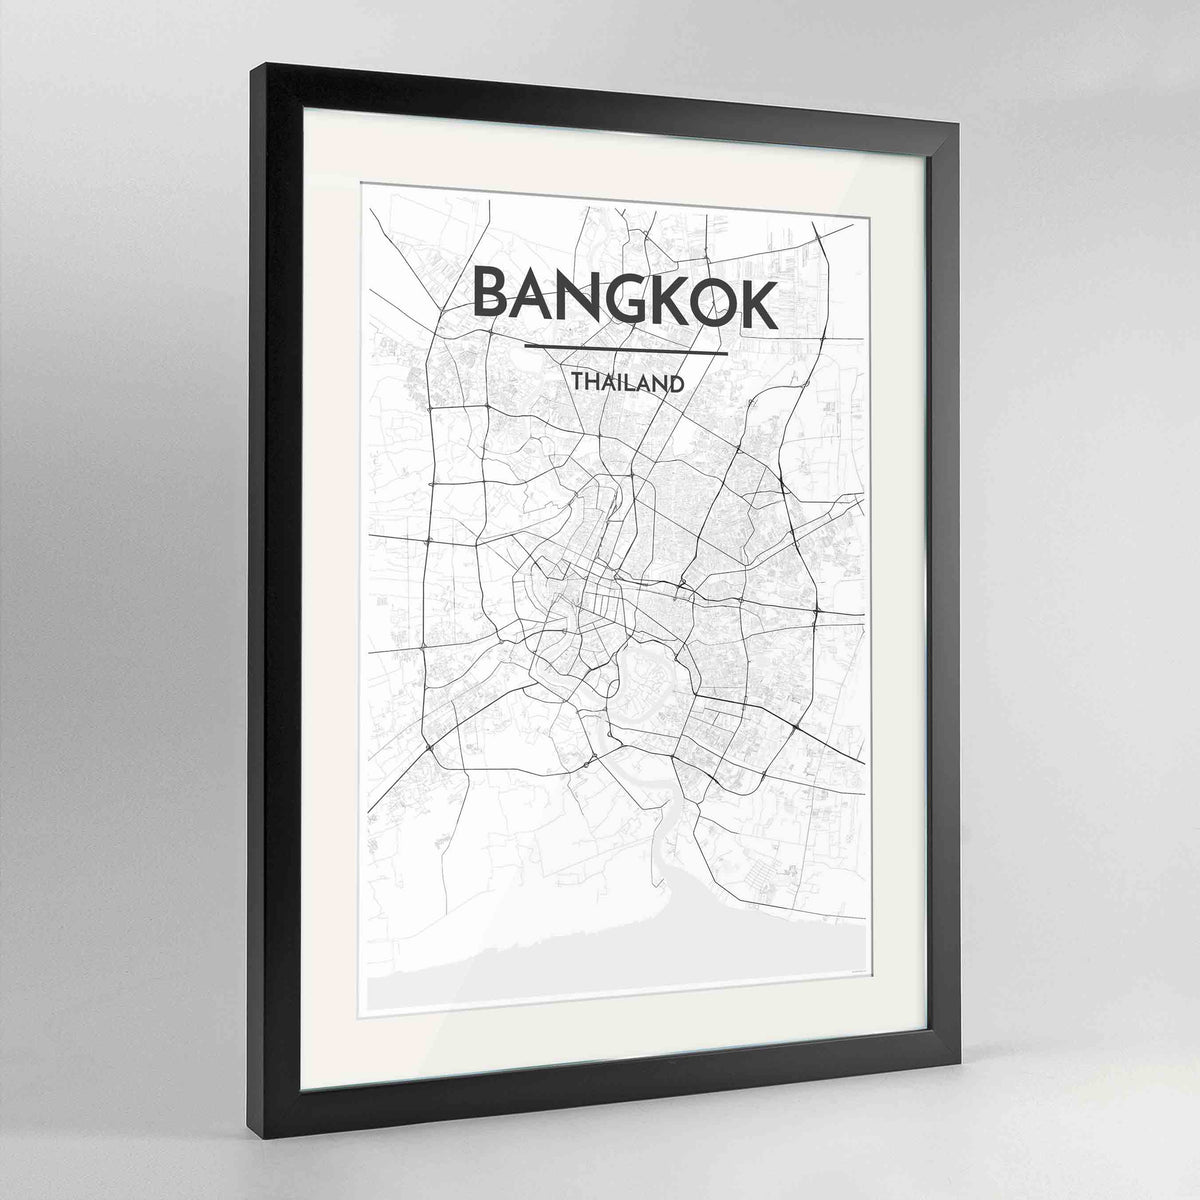 "Framed Bangkok Map Art Print 24x36"" Contemporary Black frame Point Two Design Group"